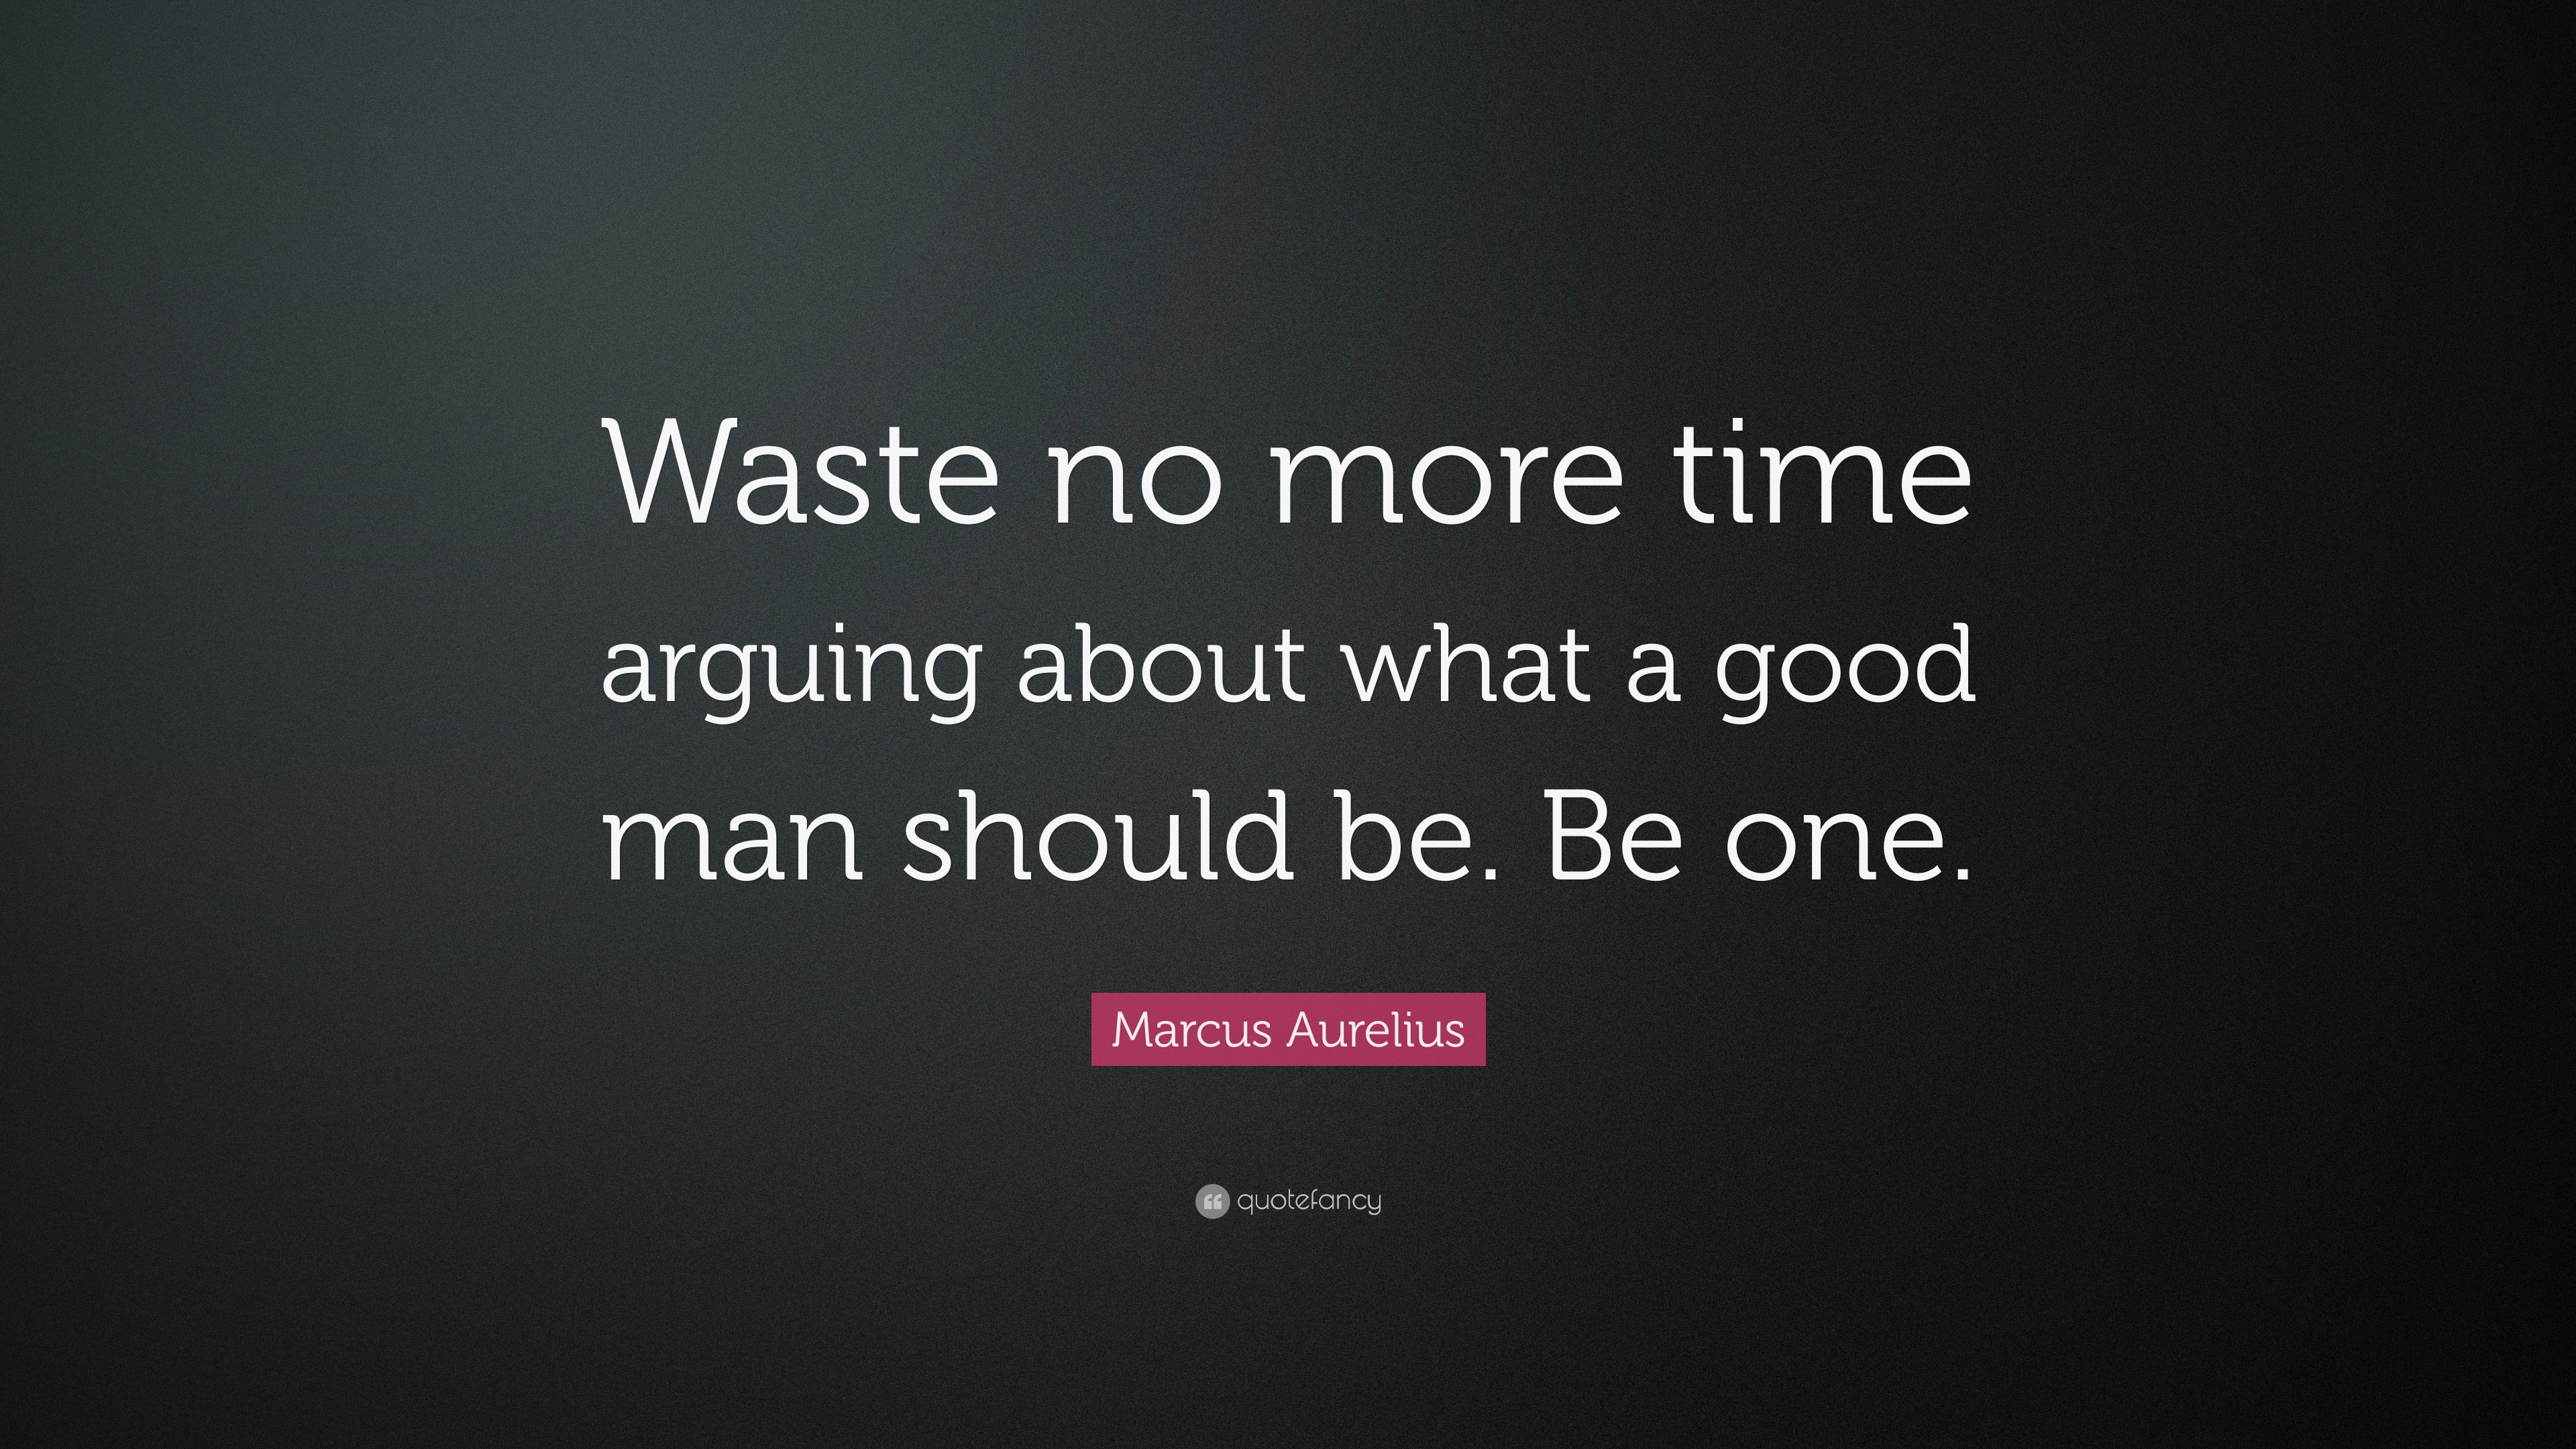 What Marcus Time Arguing One Good About Be Be Should Aurelius Man Waste No More